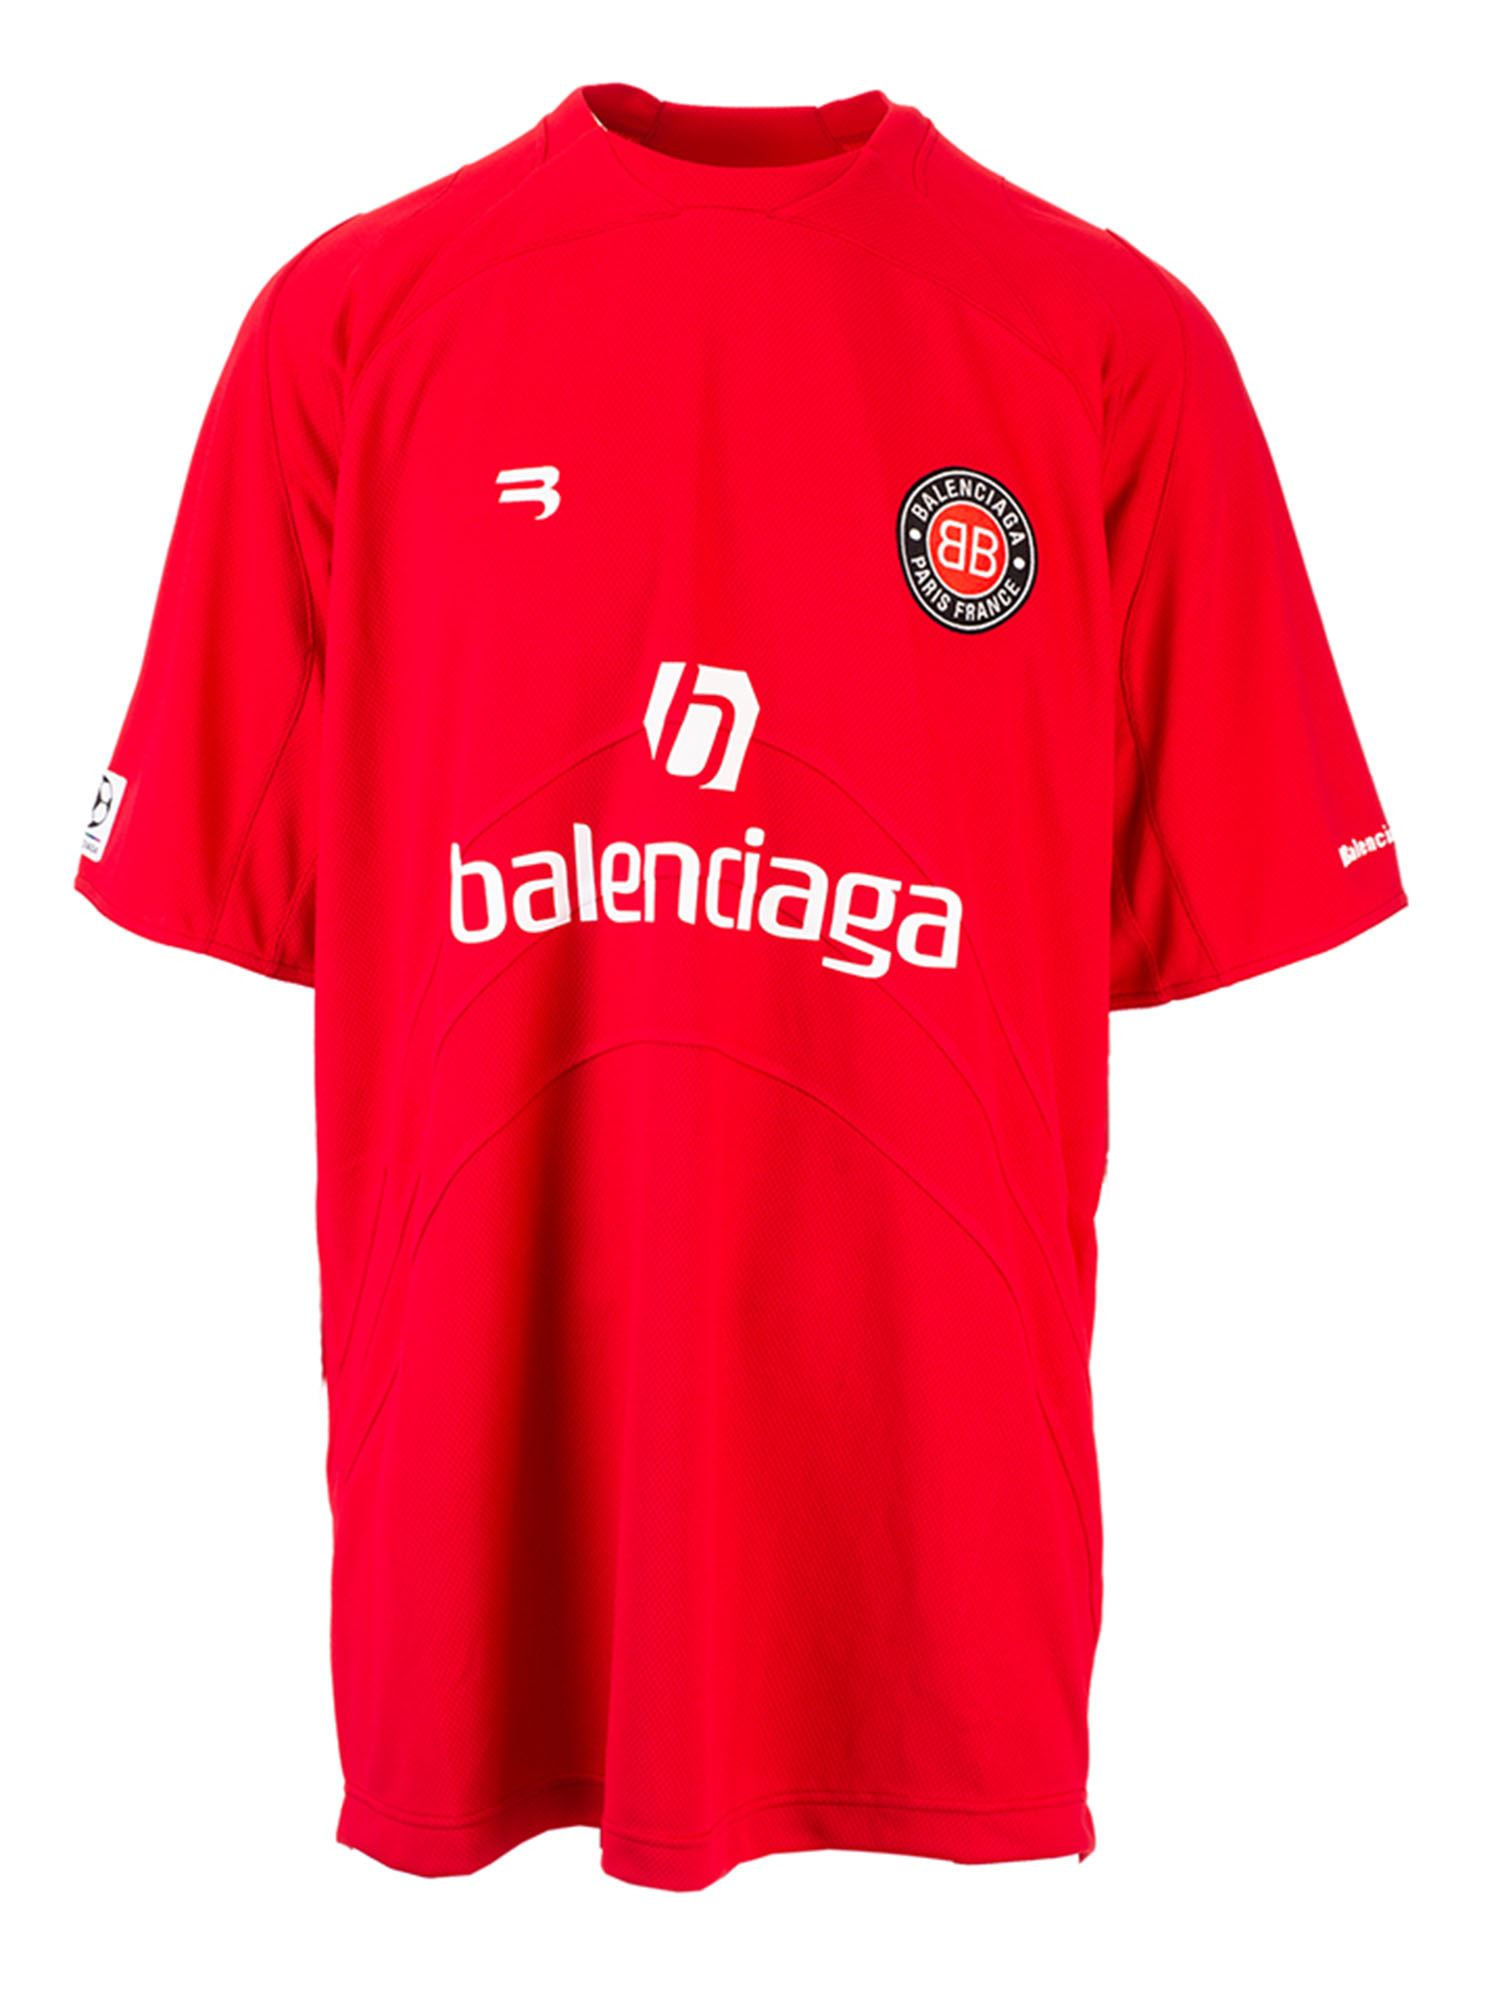 Balenciaga SOCCER T-SHIRT IN RED